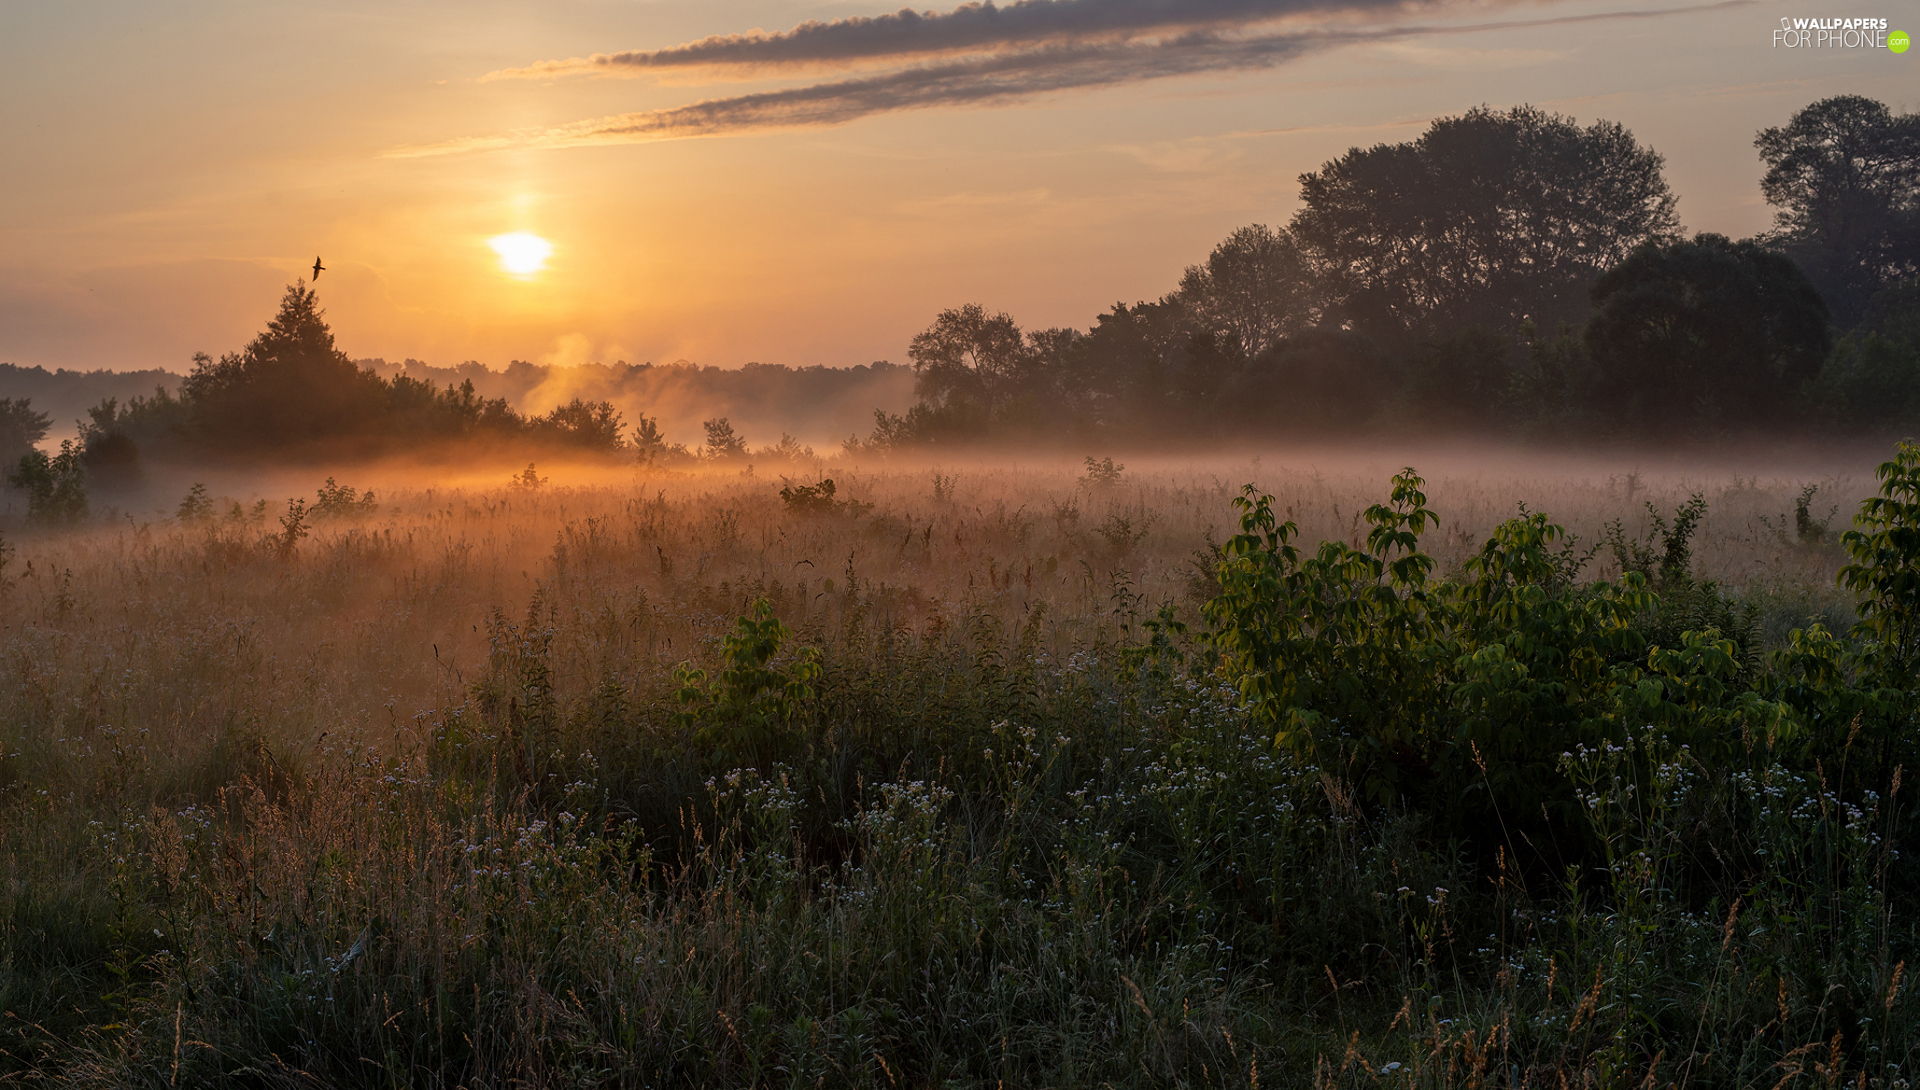 trees, grass, Sunrise, Plants, Meadow, viewes, Fog